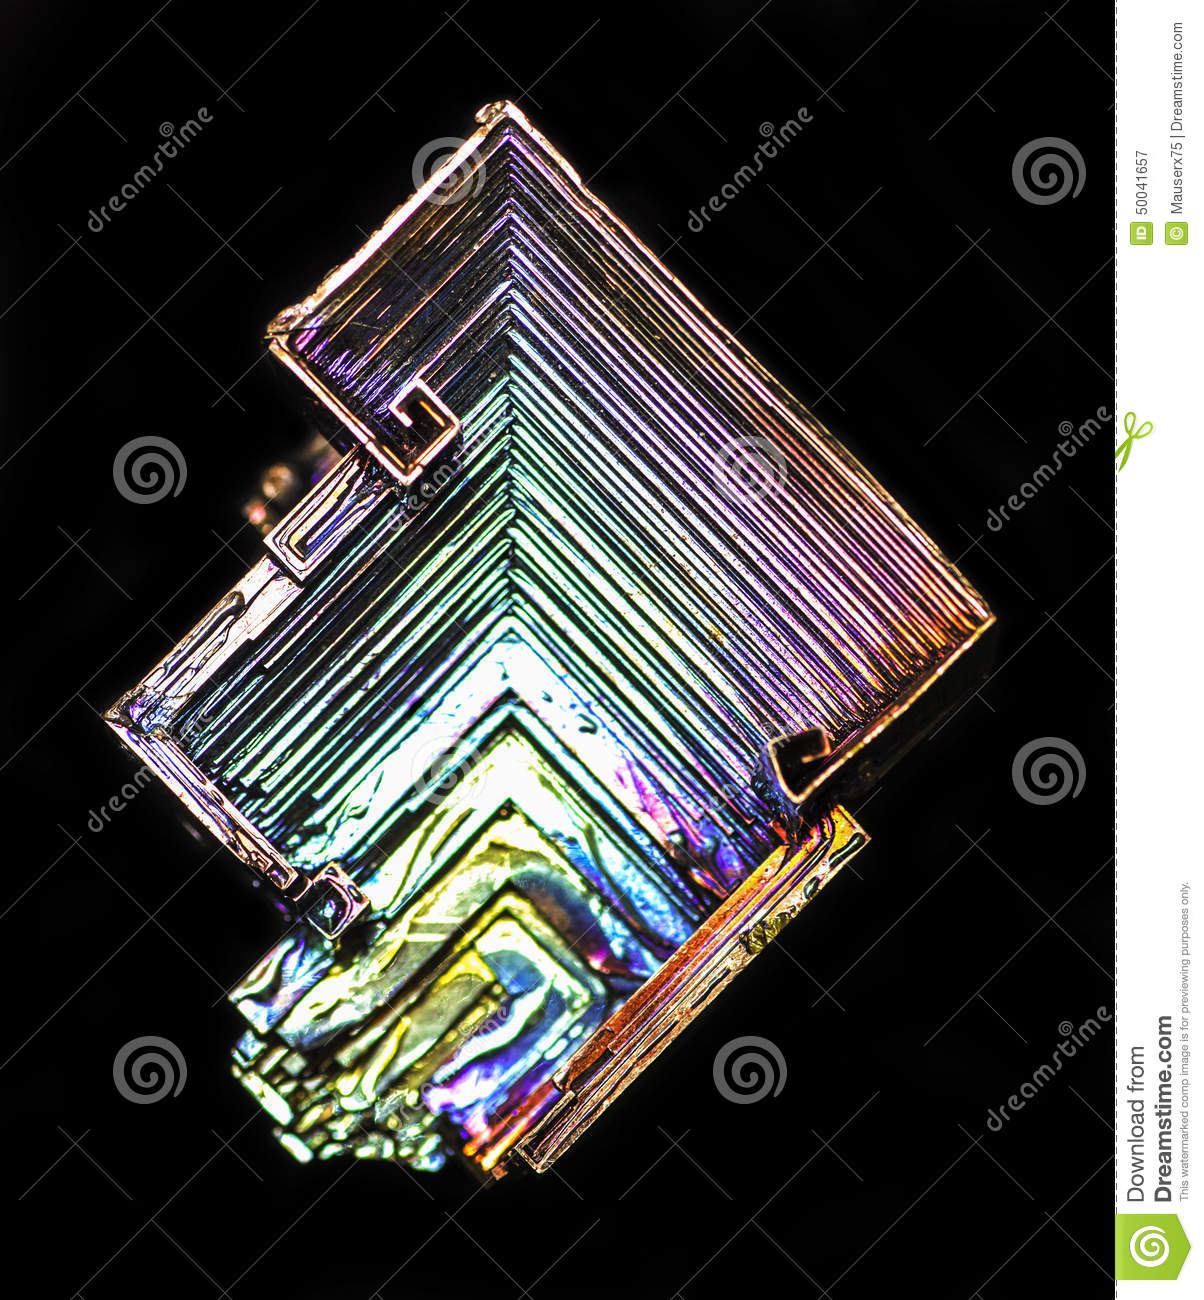 Bismuth clipart #11, Download drawings